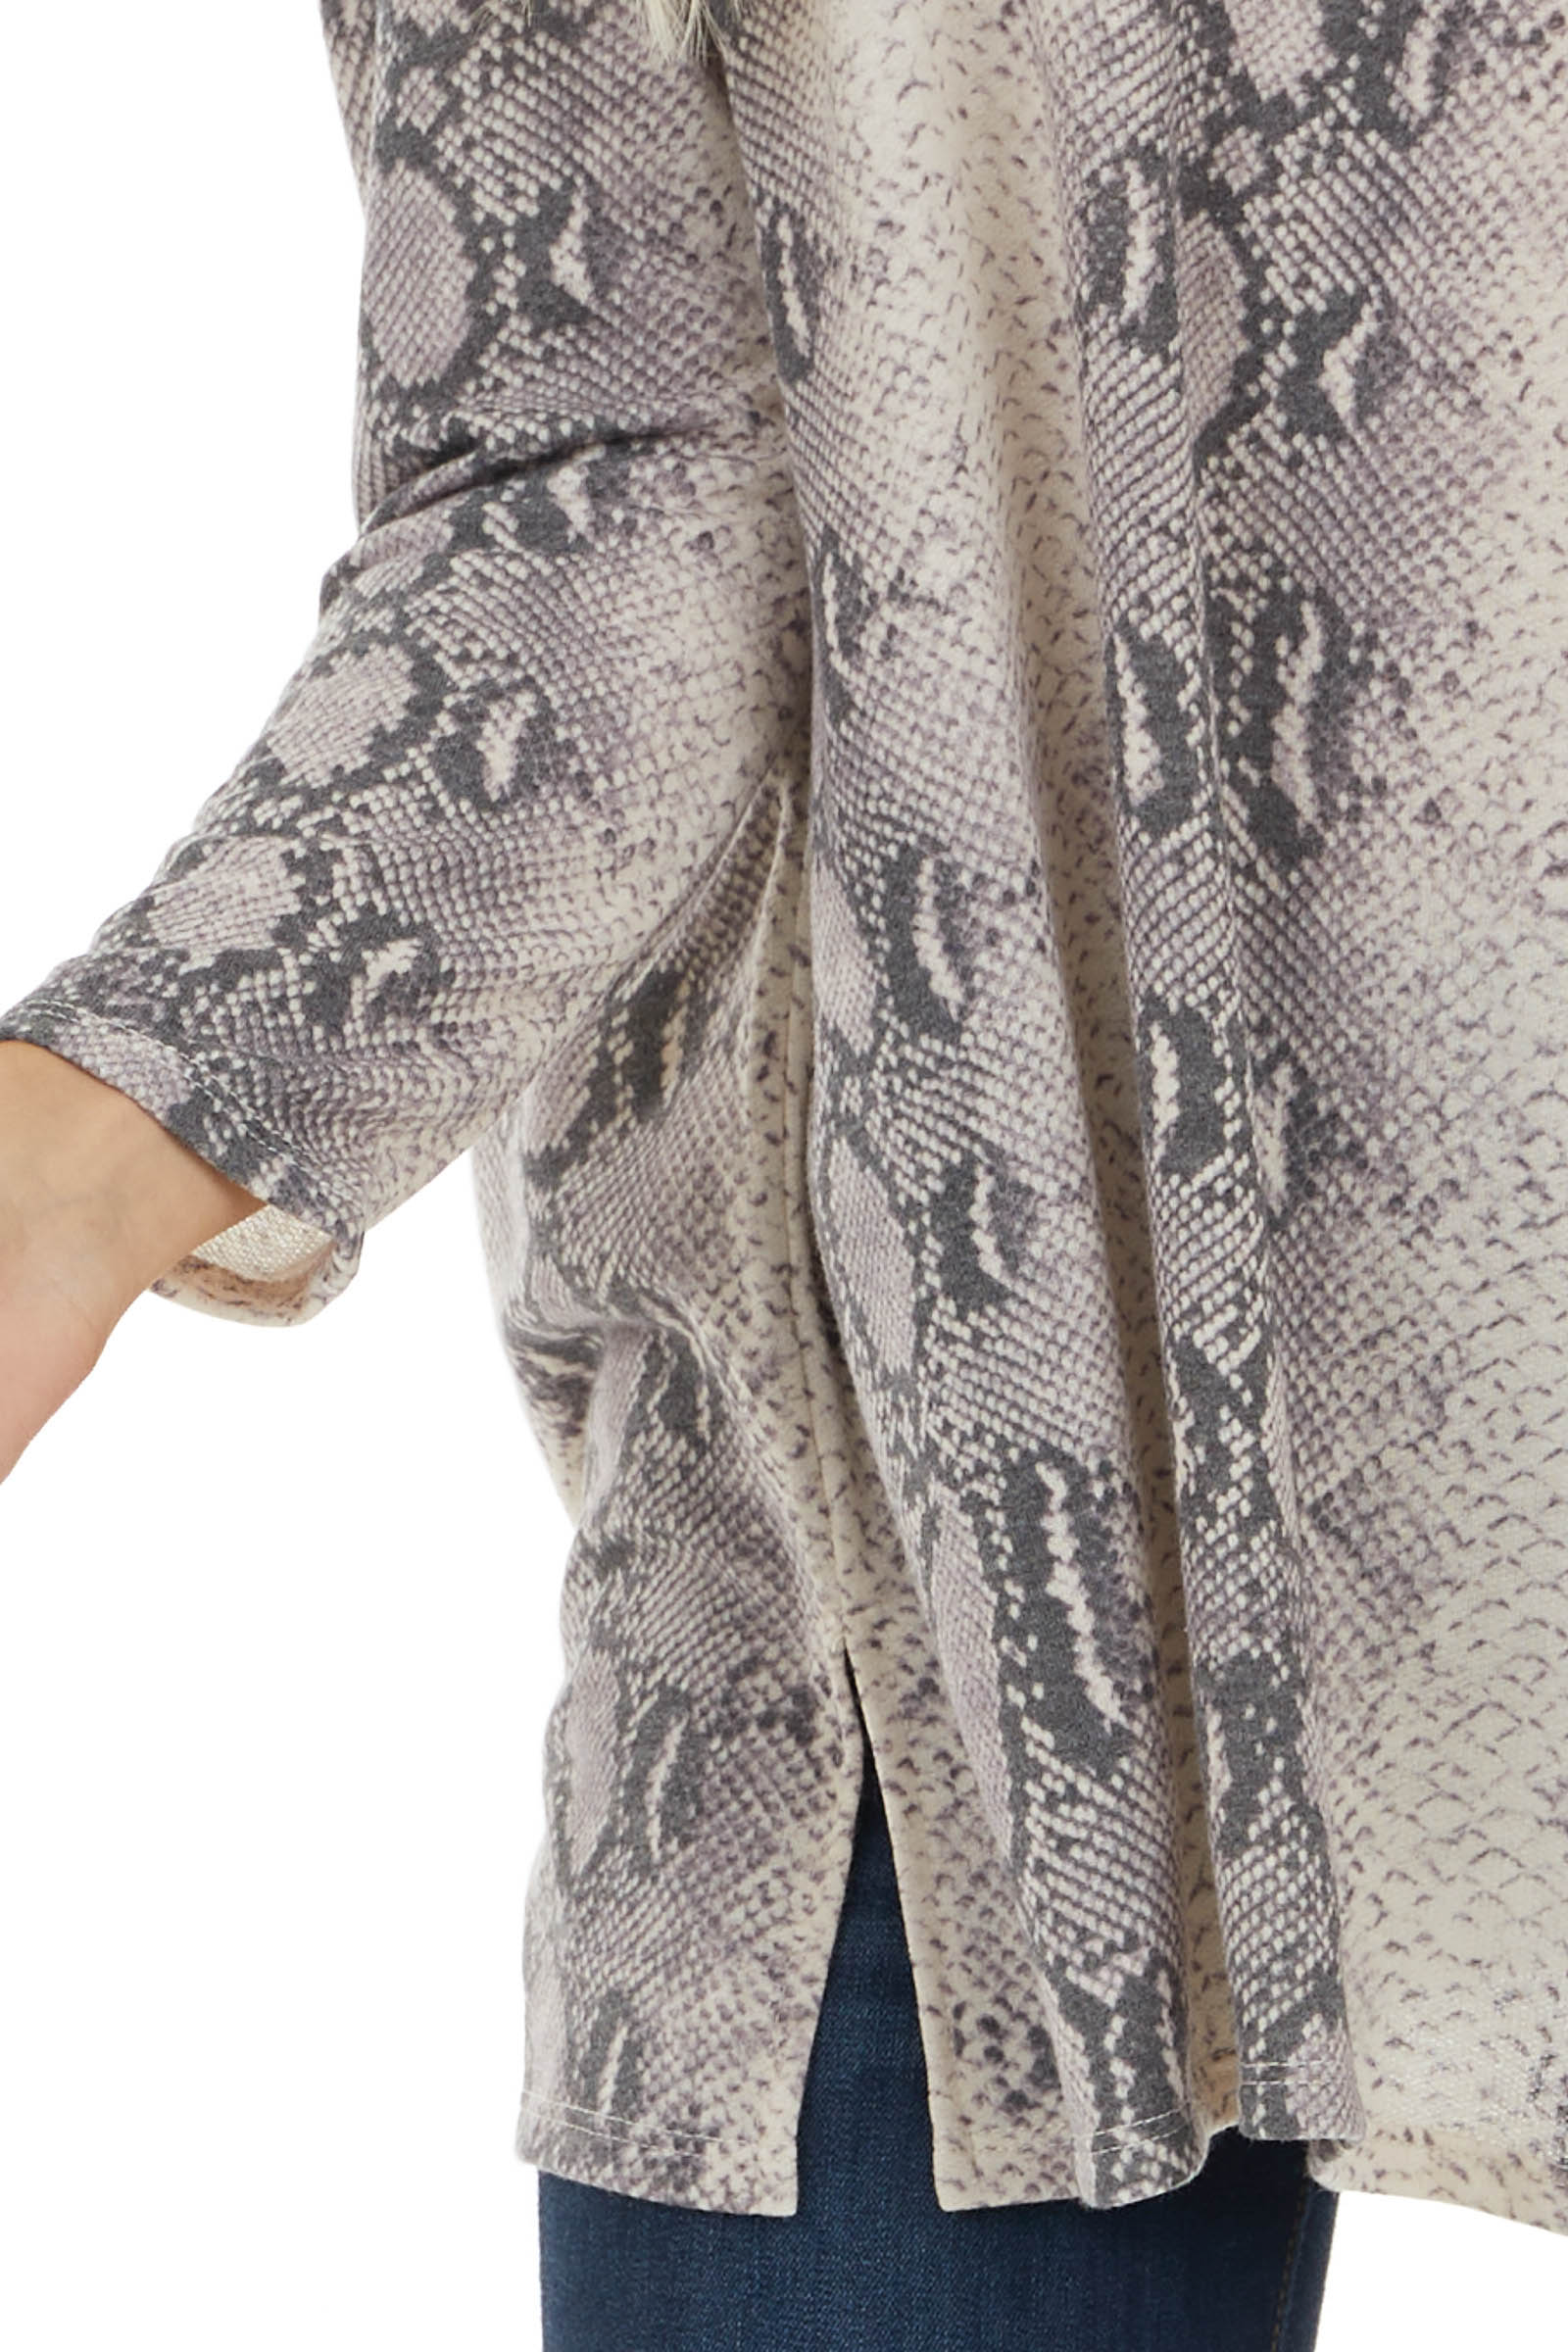 Charcoal and Light Indigo Snakeskin Print Stretchy Knit Top